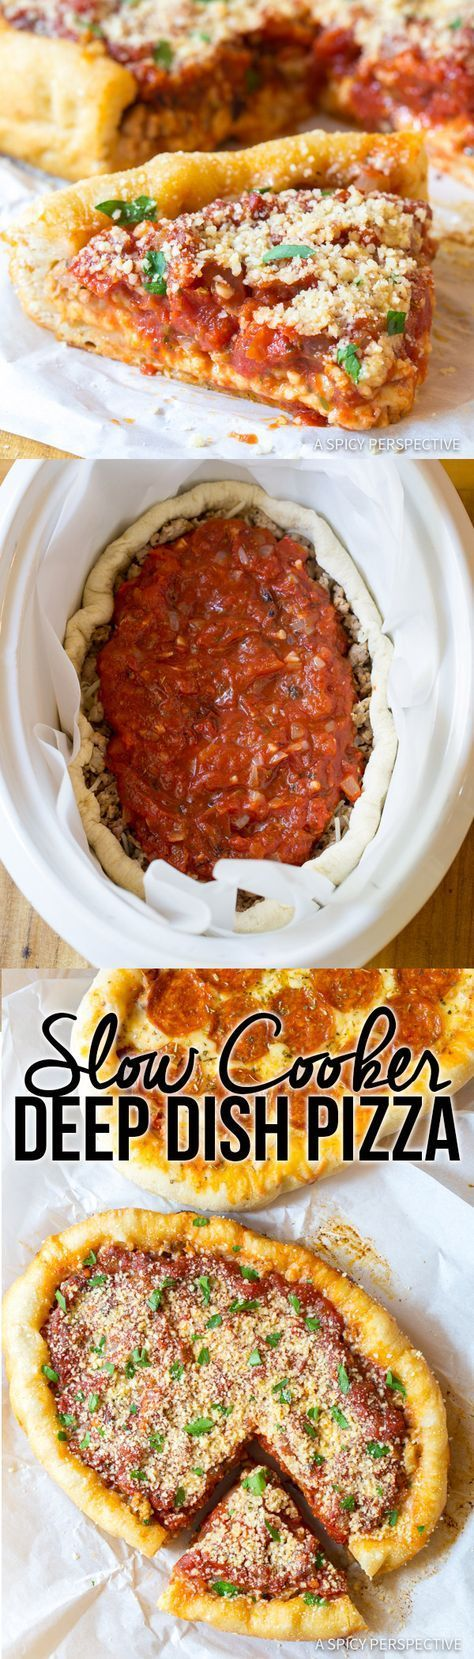 Slow Cooker Deep Dish Pizza Recipe (Chicago Style!) | http://ASpicyPerspective.com